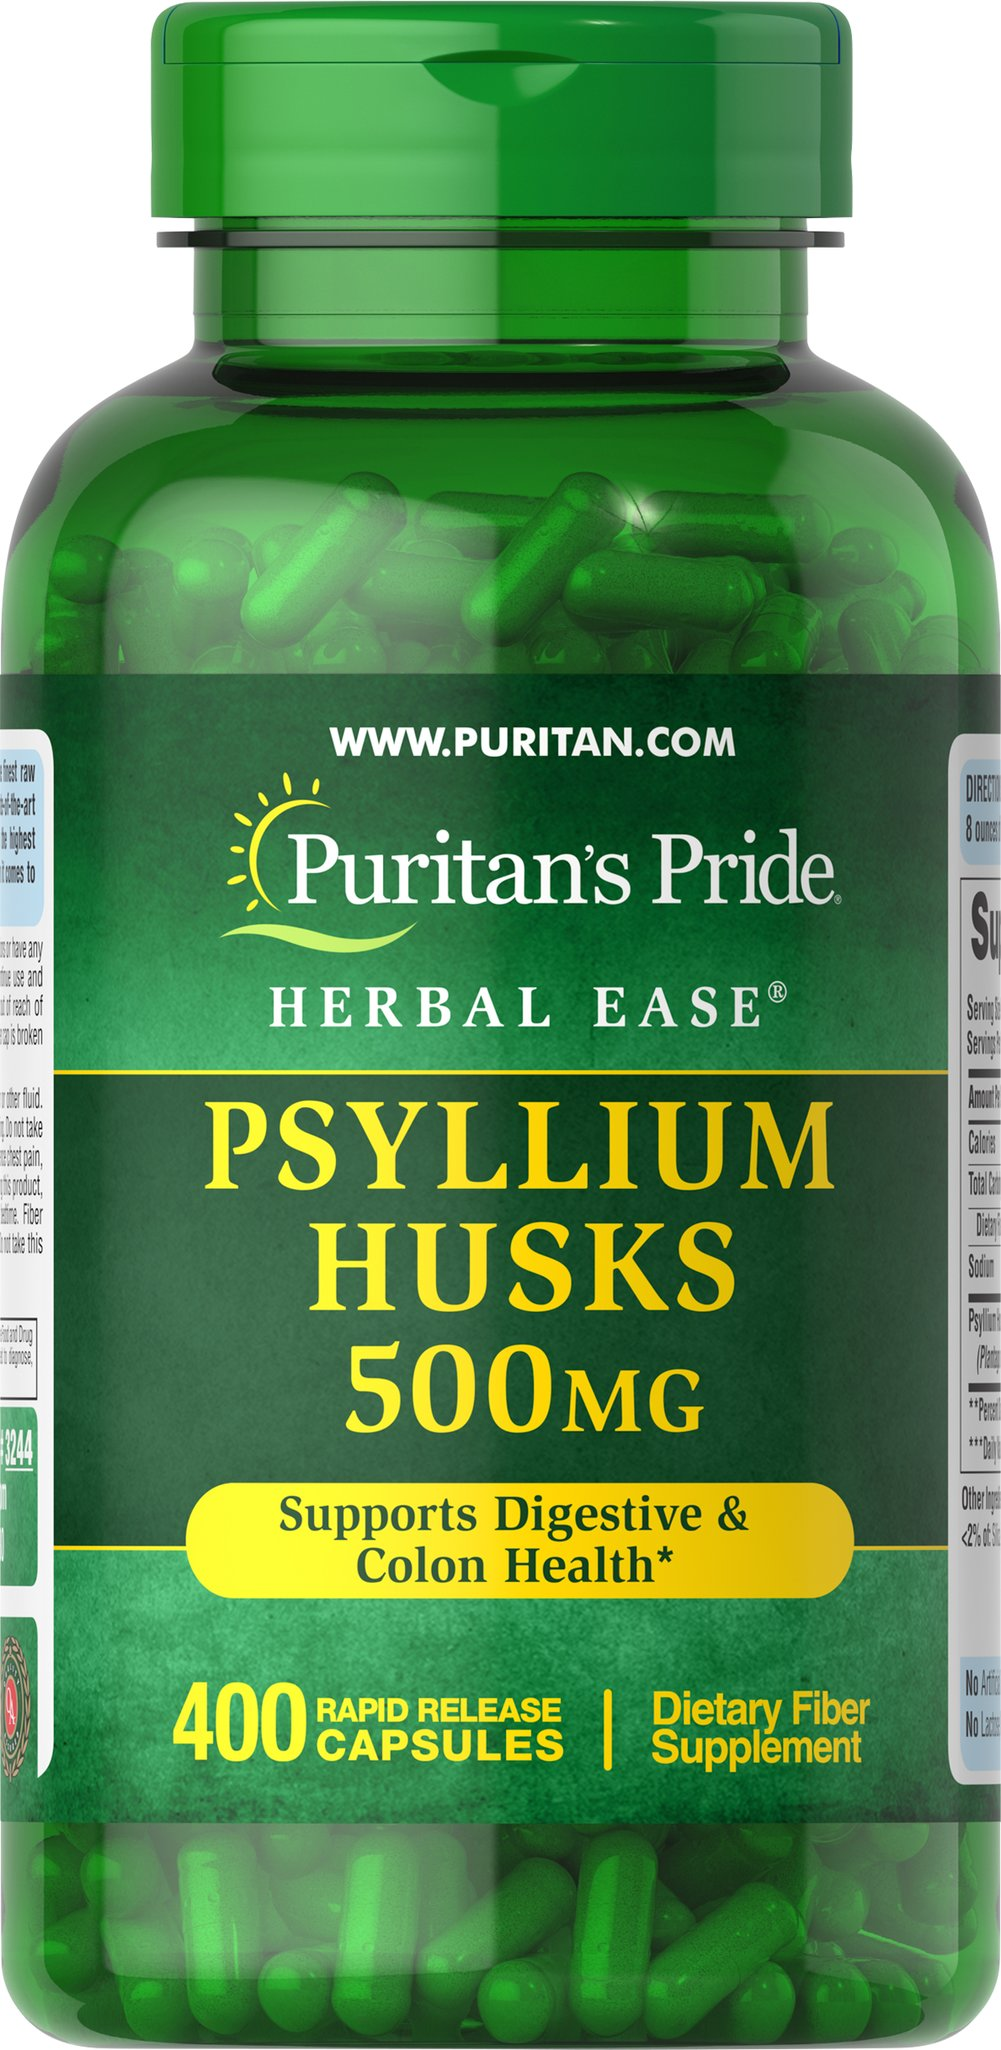 Psyllium Husks 500 mg <p>Psyllium Husks are a source of soluble fiber and a healthy addition to your diet. Our high-quality formula provides 1,000 mg of Psyllium seed husk per serving to support digestive and colon health.**</p>  400 Capsules 500 mg $27.99